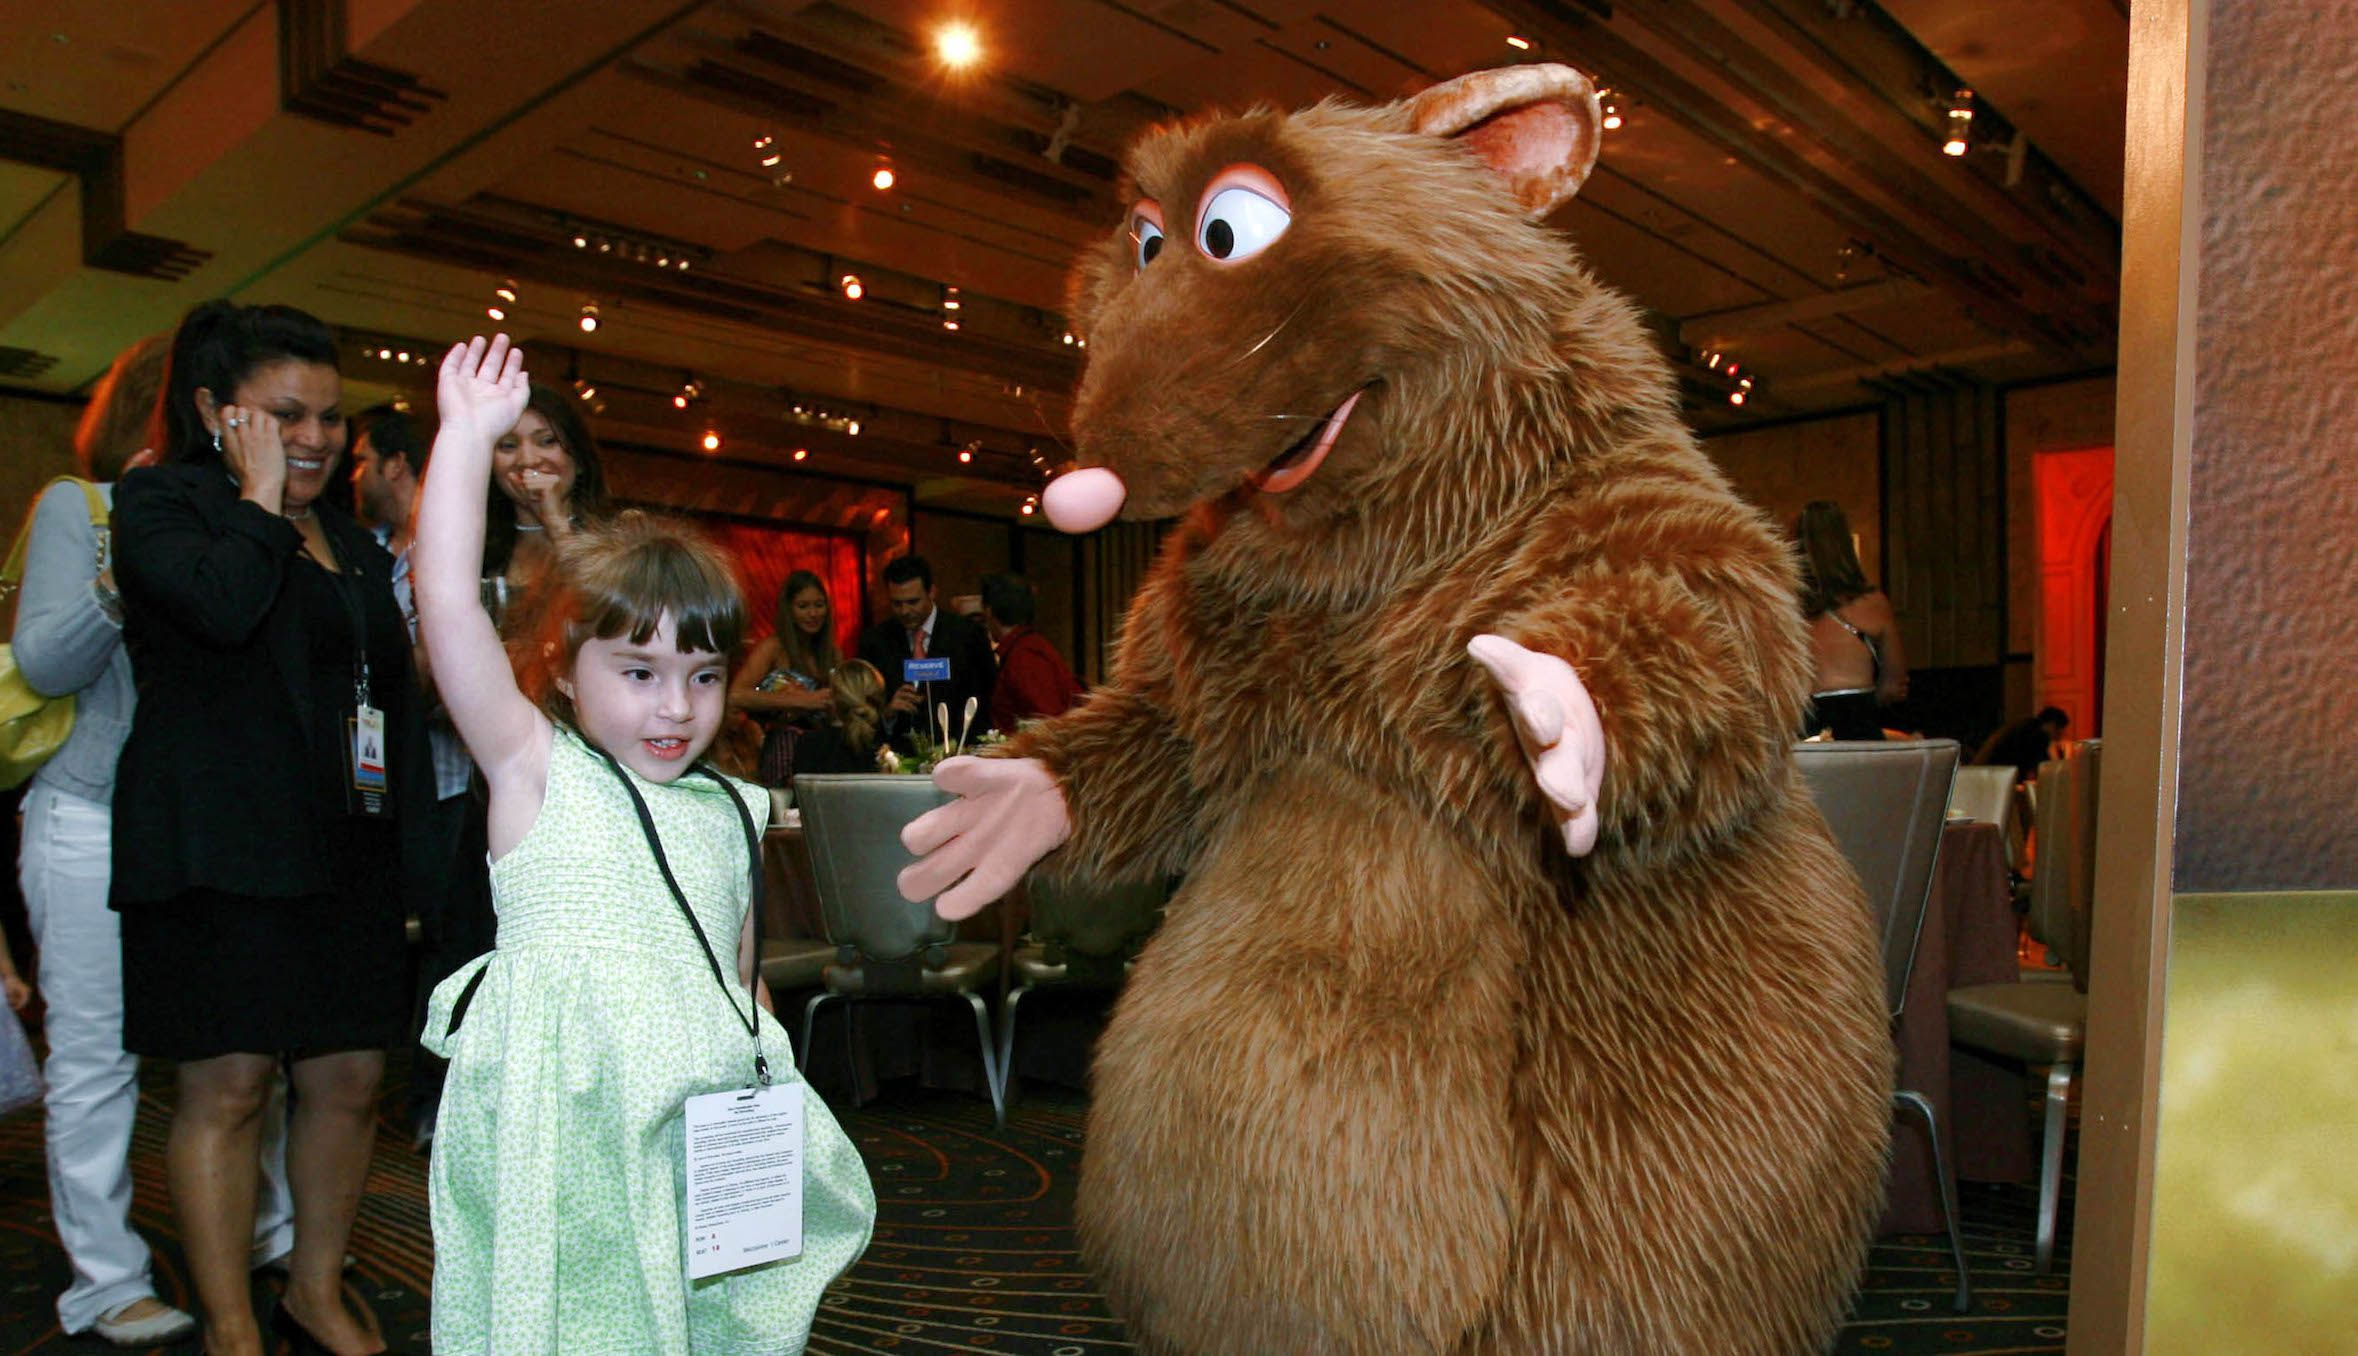 "Young party goers dance with Emile the Rat after the premiere of the Pixar animated film ""Ratatouille"" in Hollywood, California, June 22, 2007. REUTERS/Mark Avery (UNITED STATES) - RTR1R23R"